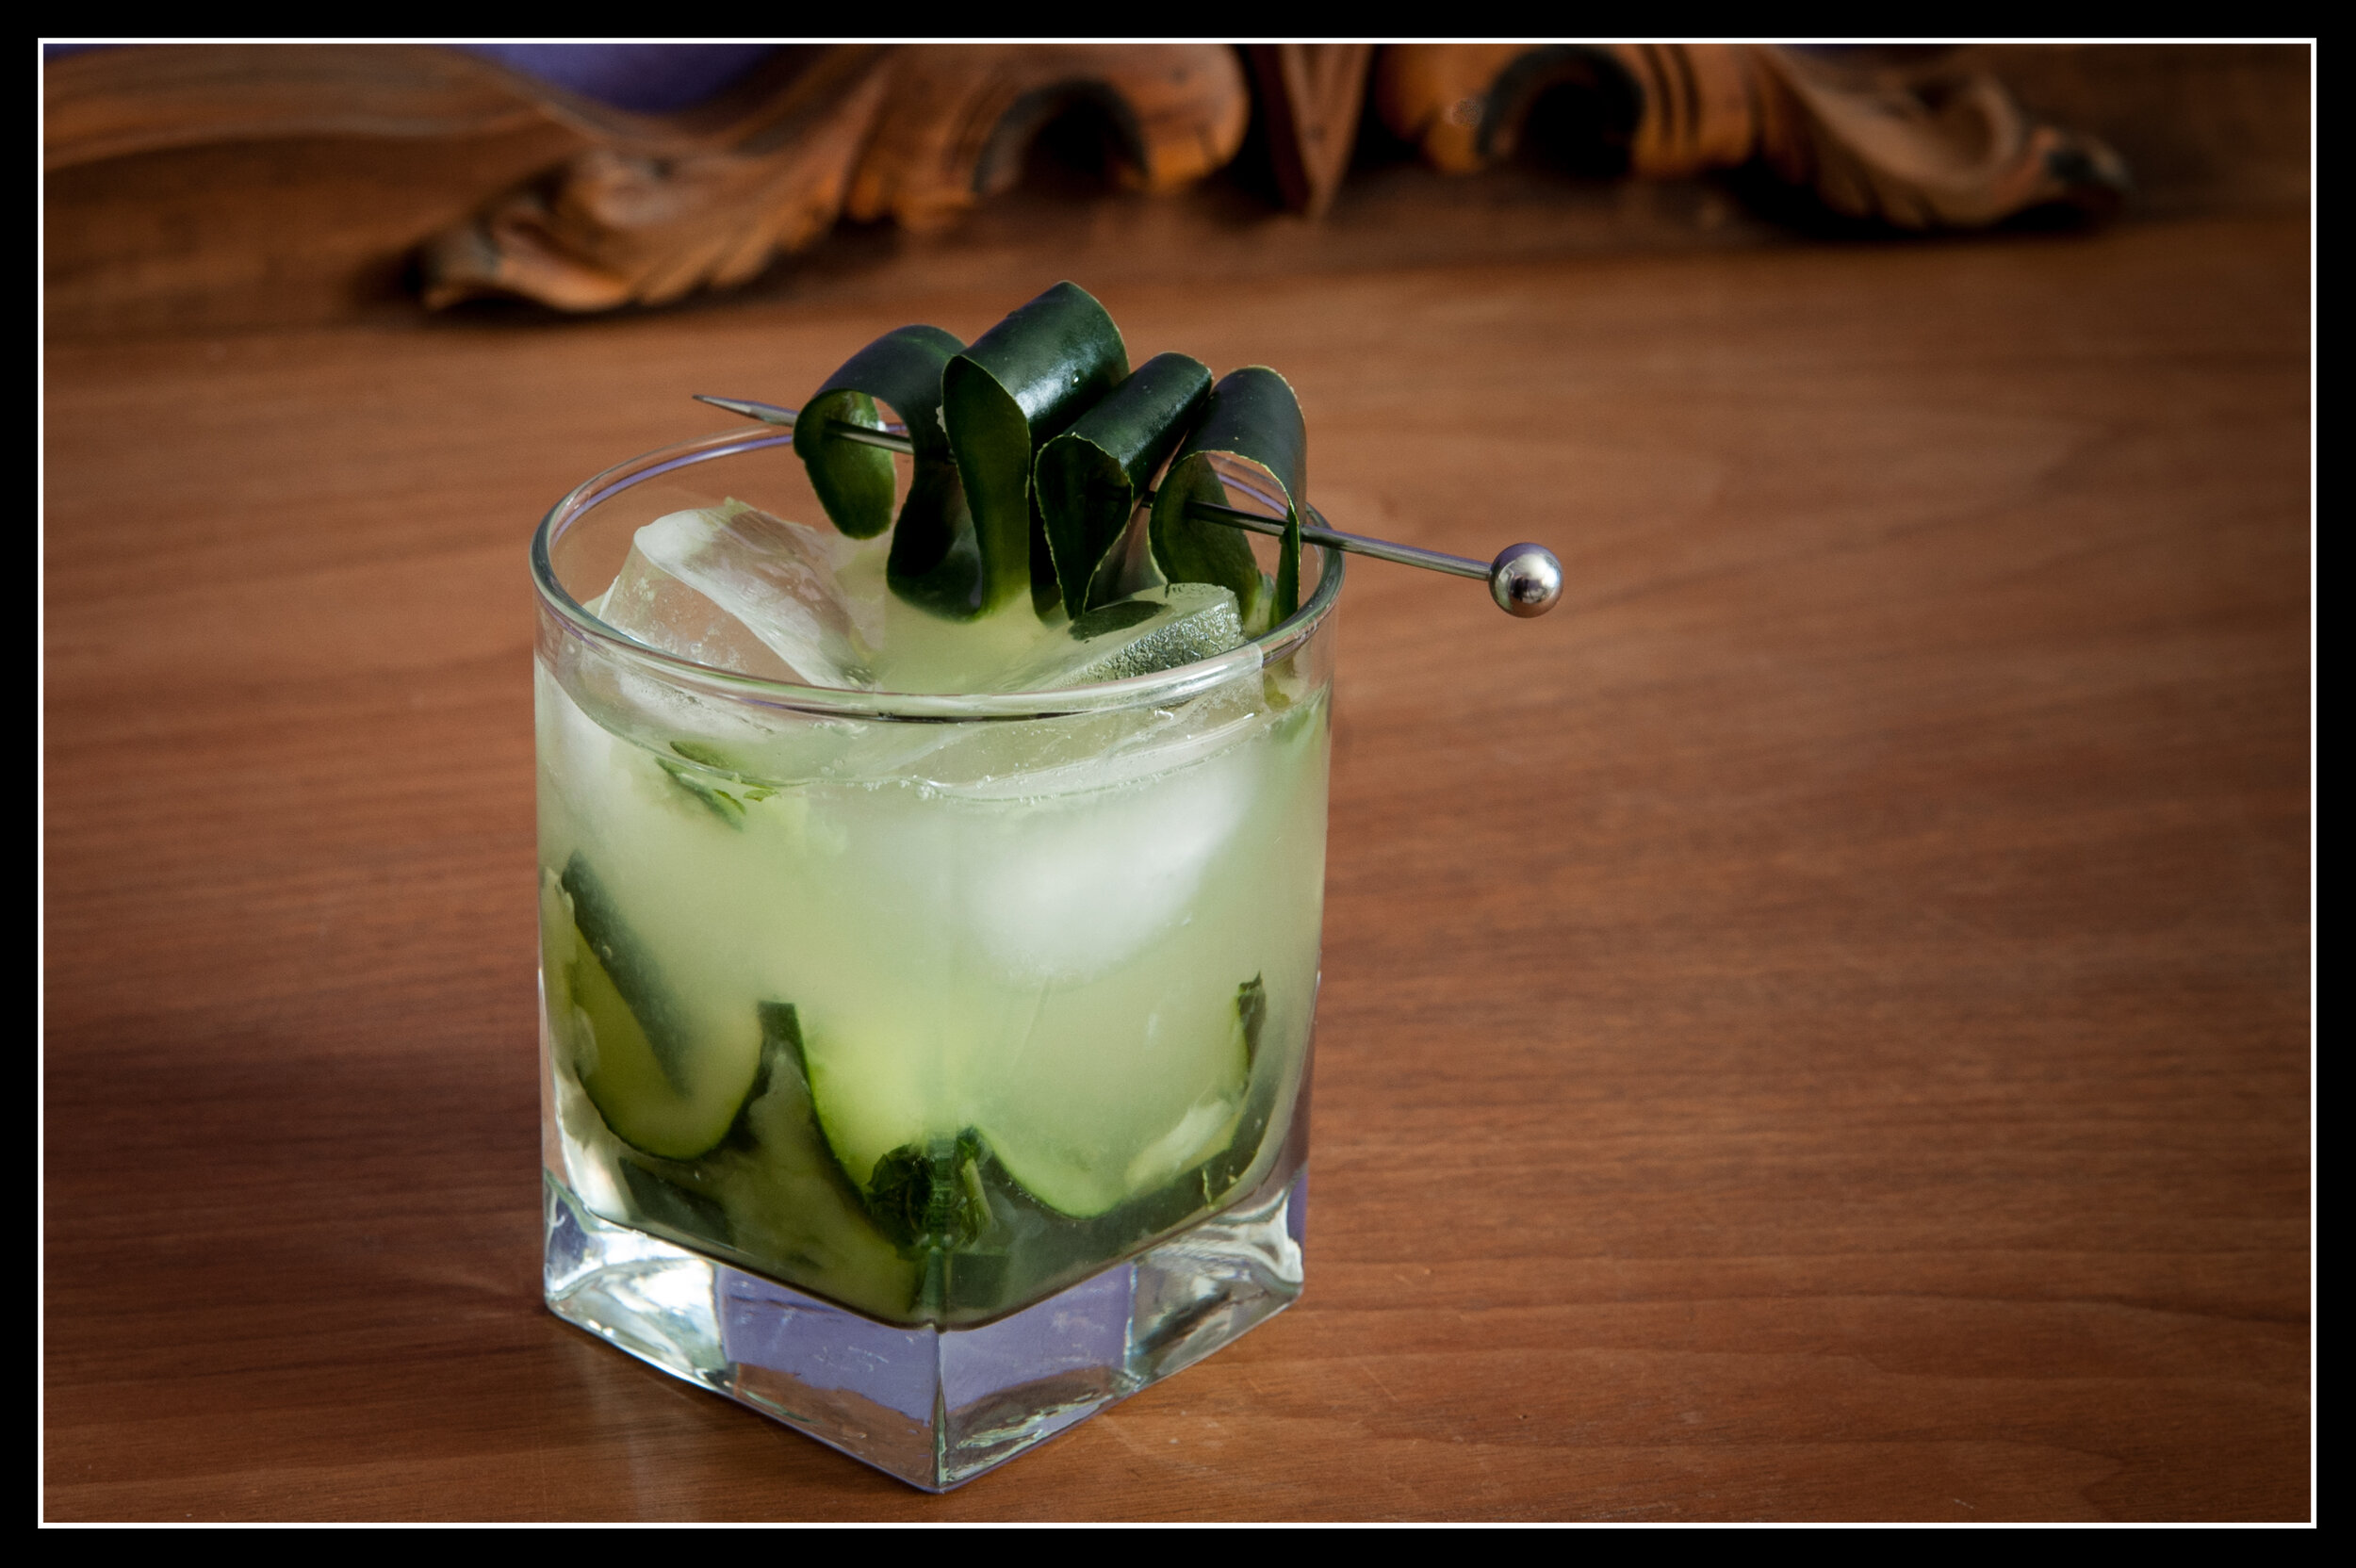 Lucamanno Fredo - 2.25 oz of dill infused GL Vodka .75 mint infused simple syrup.75 fresh lime juice6 slices of ¼ inch thick cucumber5 mint leavesMuddle cucumbers and mint in rocks glass. Add ice to glass and add remaining ingredients. Garnish with cucumber or mint.To infuse vodka, steep a few sprigs of dill to vodka for 36 – 48 hours are room temperature. (I used two springs in ½ cup in sealed mason jar.)Simple Syrup – I made ½ cup sugar and ½ cup water. Heated until dissolved. Removed from heat, added a couple sprigs of mint and let steep for about 15 minutes